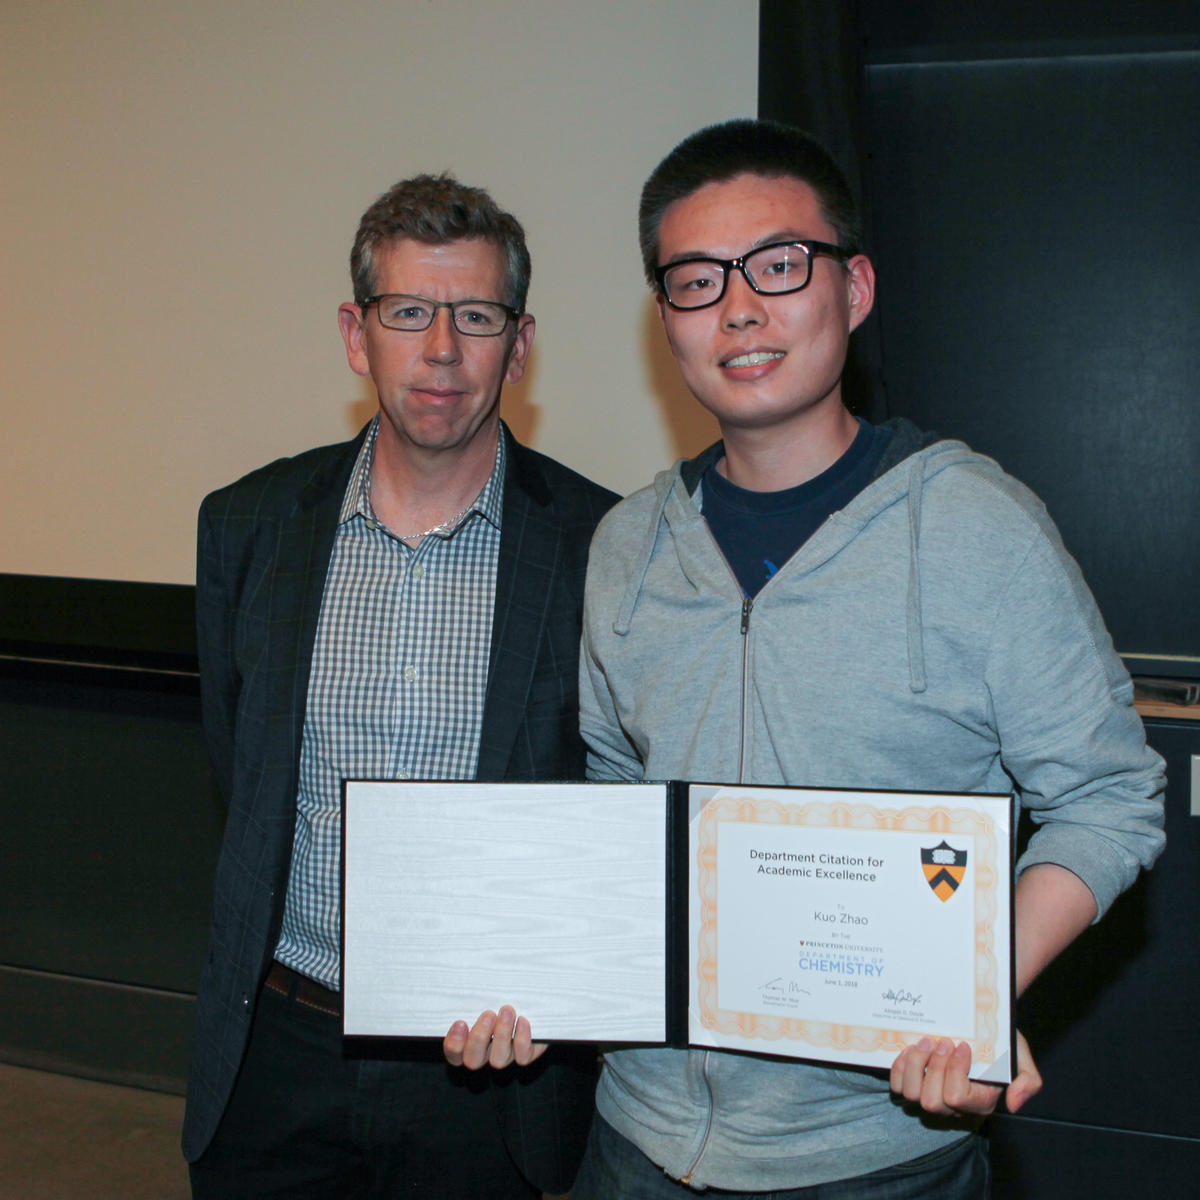 Tom Muir and Kuo Zhao (Knowles lab), recipient of the Department Citation for Academic Excellence.